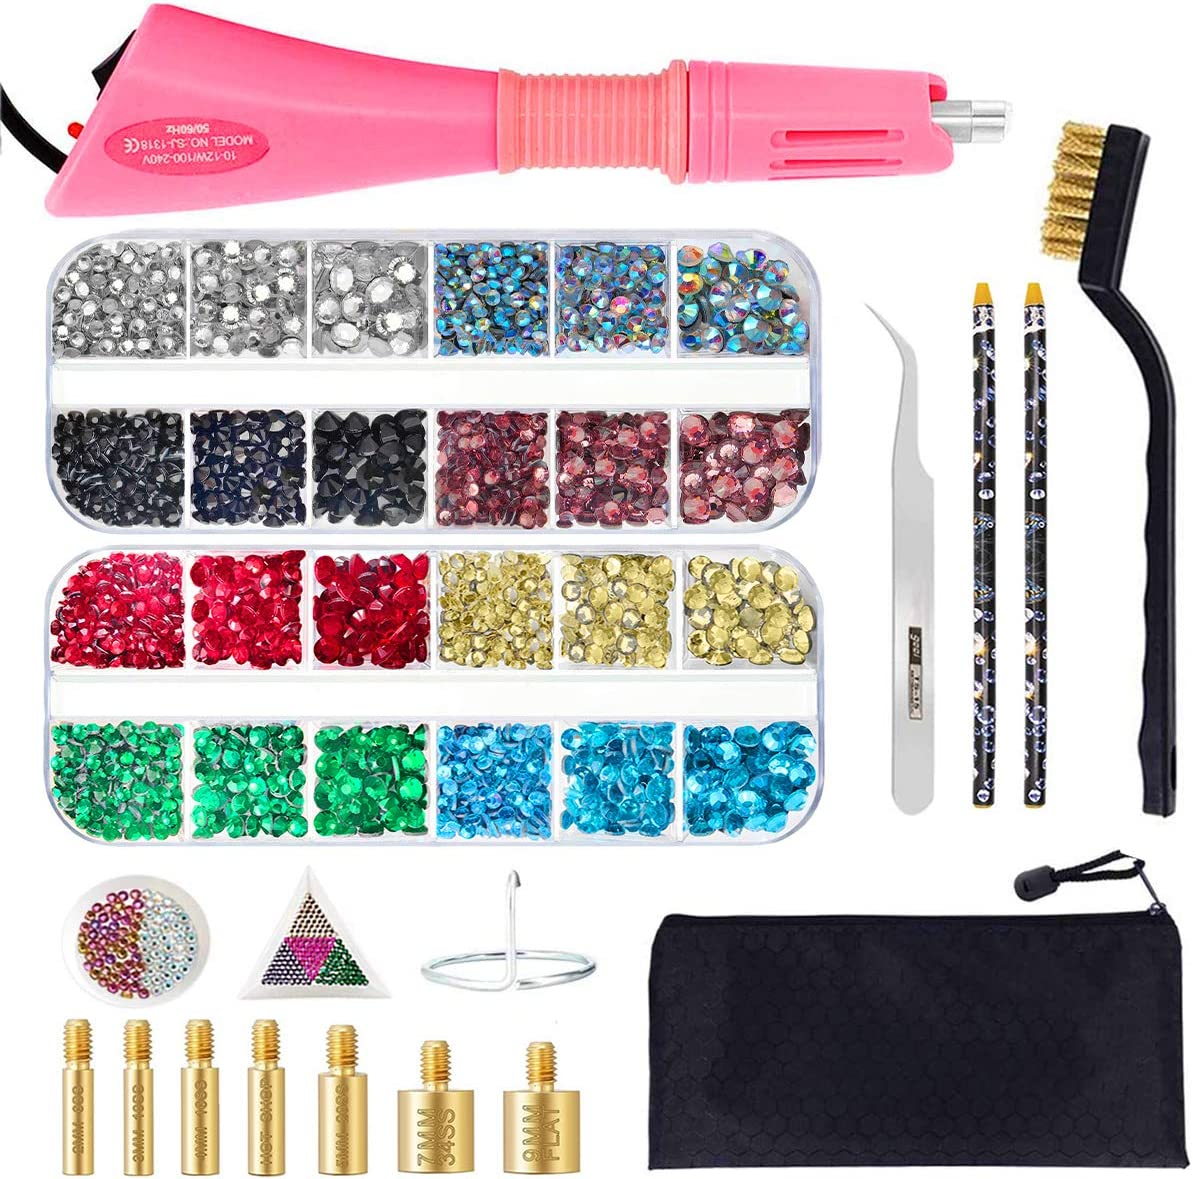 2021 spring and summer new Ranking TOP14 Hotfix Applicator Tool Bedazzler Kit Hot with Fix DIY Rhineston